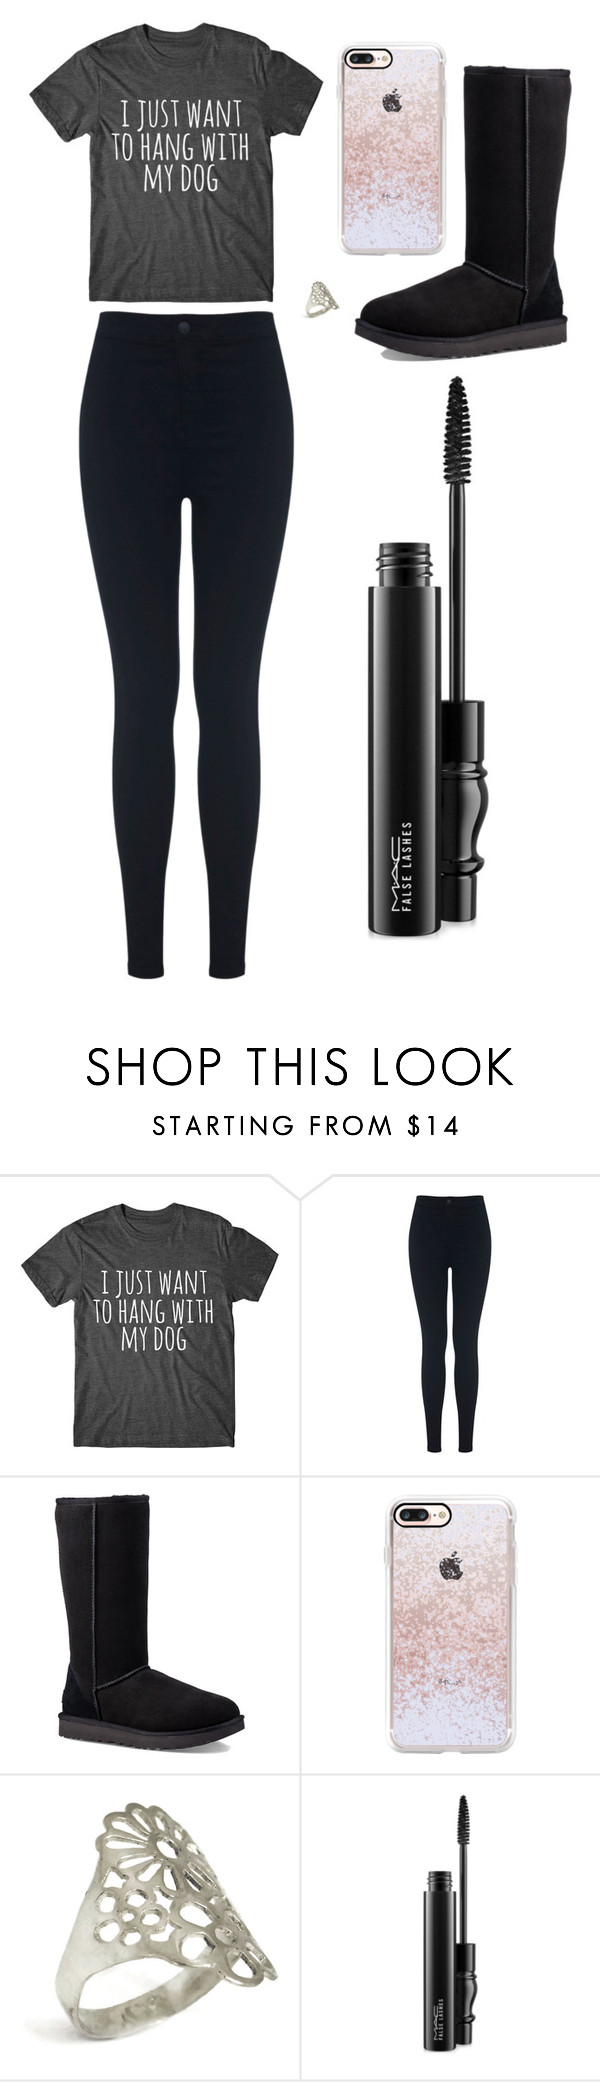 """Sans titre #2615"" by merveille67120 ❤ liked on Polyvore featuring Miss Selfridge, UGG, Casetify and MAC Cosmetics"